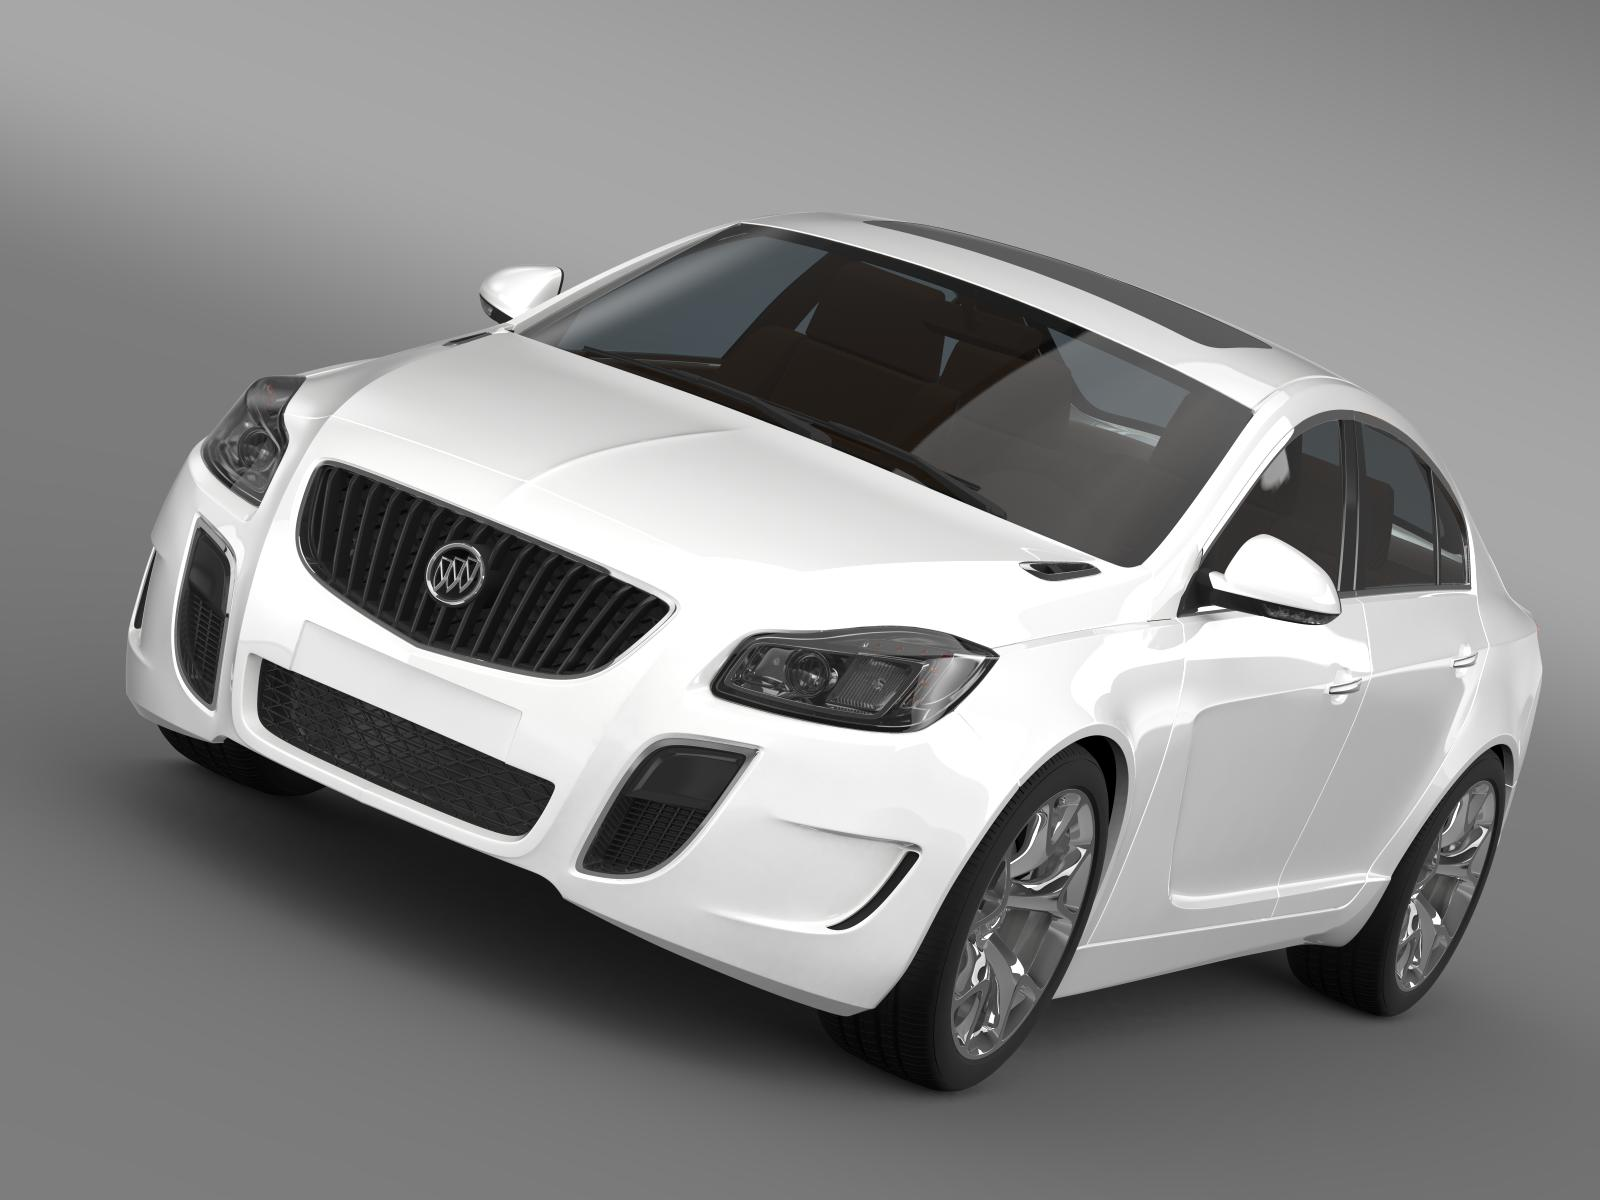 buick regal gs 2011-2013 3d model 3ds max fbx c4d lwo ma mb hrc xsi obj 164687